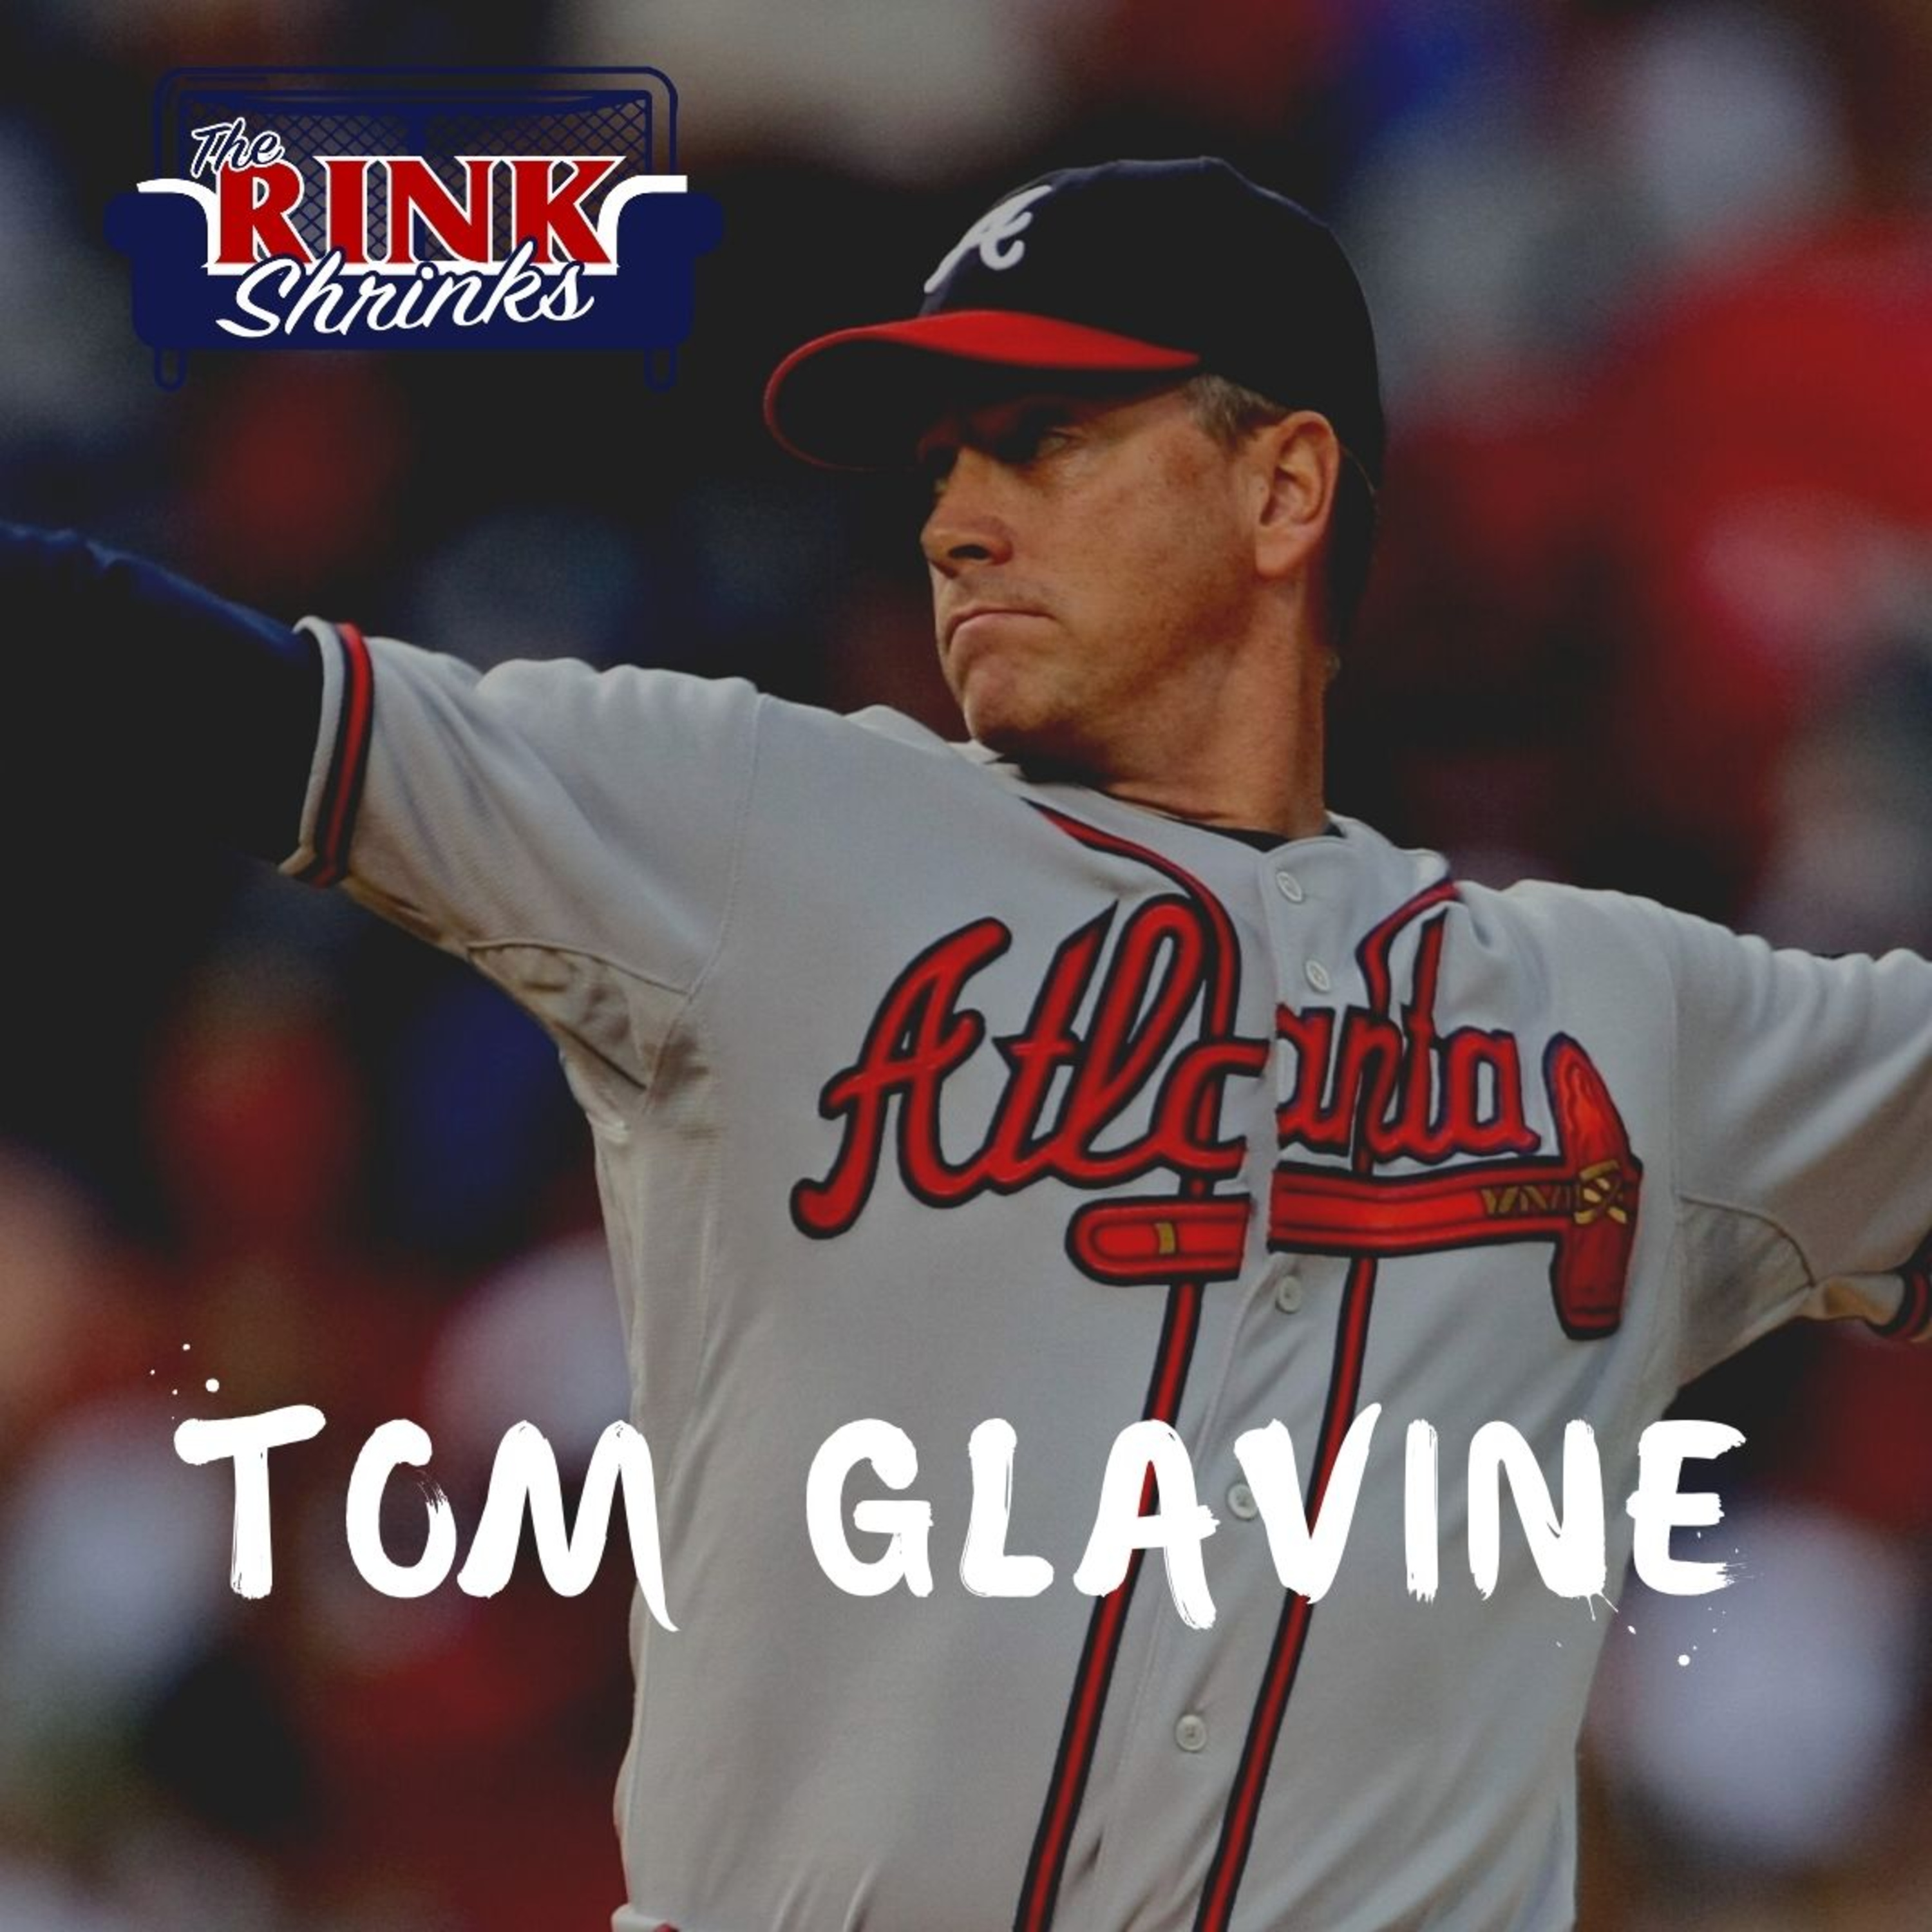 Tom Glavine: The Journey of a Baseball Hall of Famer, Picking Baseball Over Hockey & Lessons Learned Along the Way